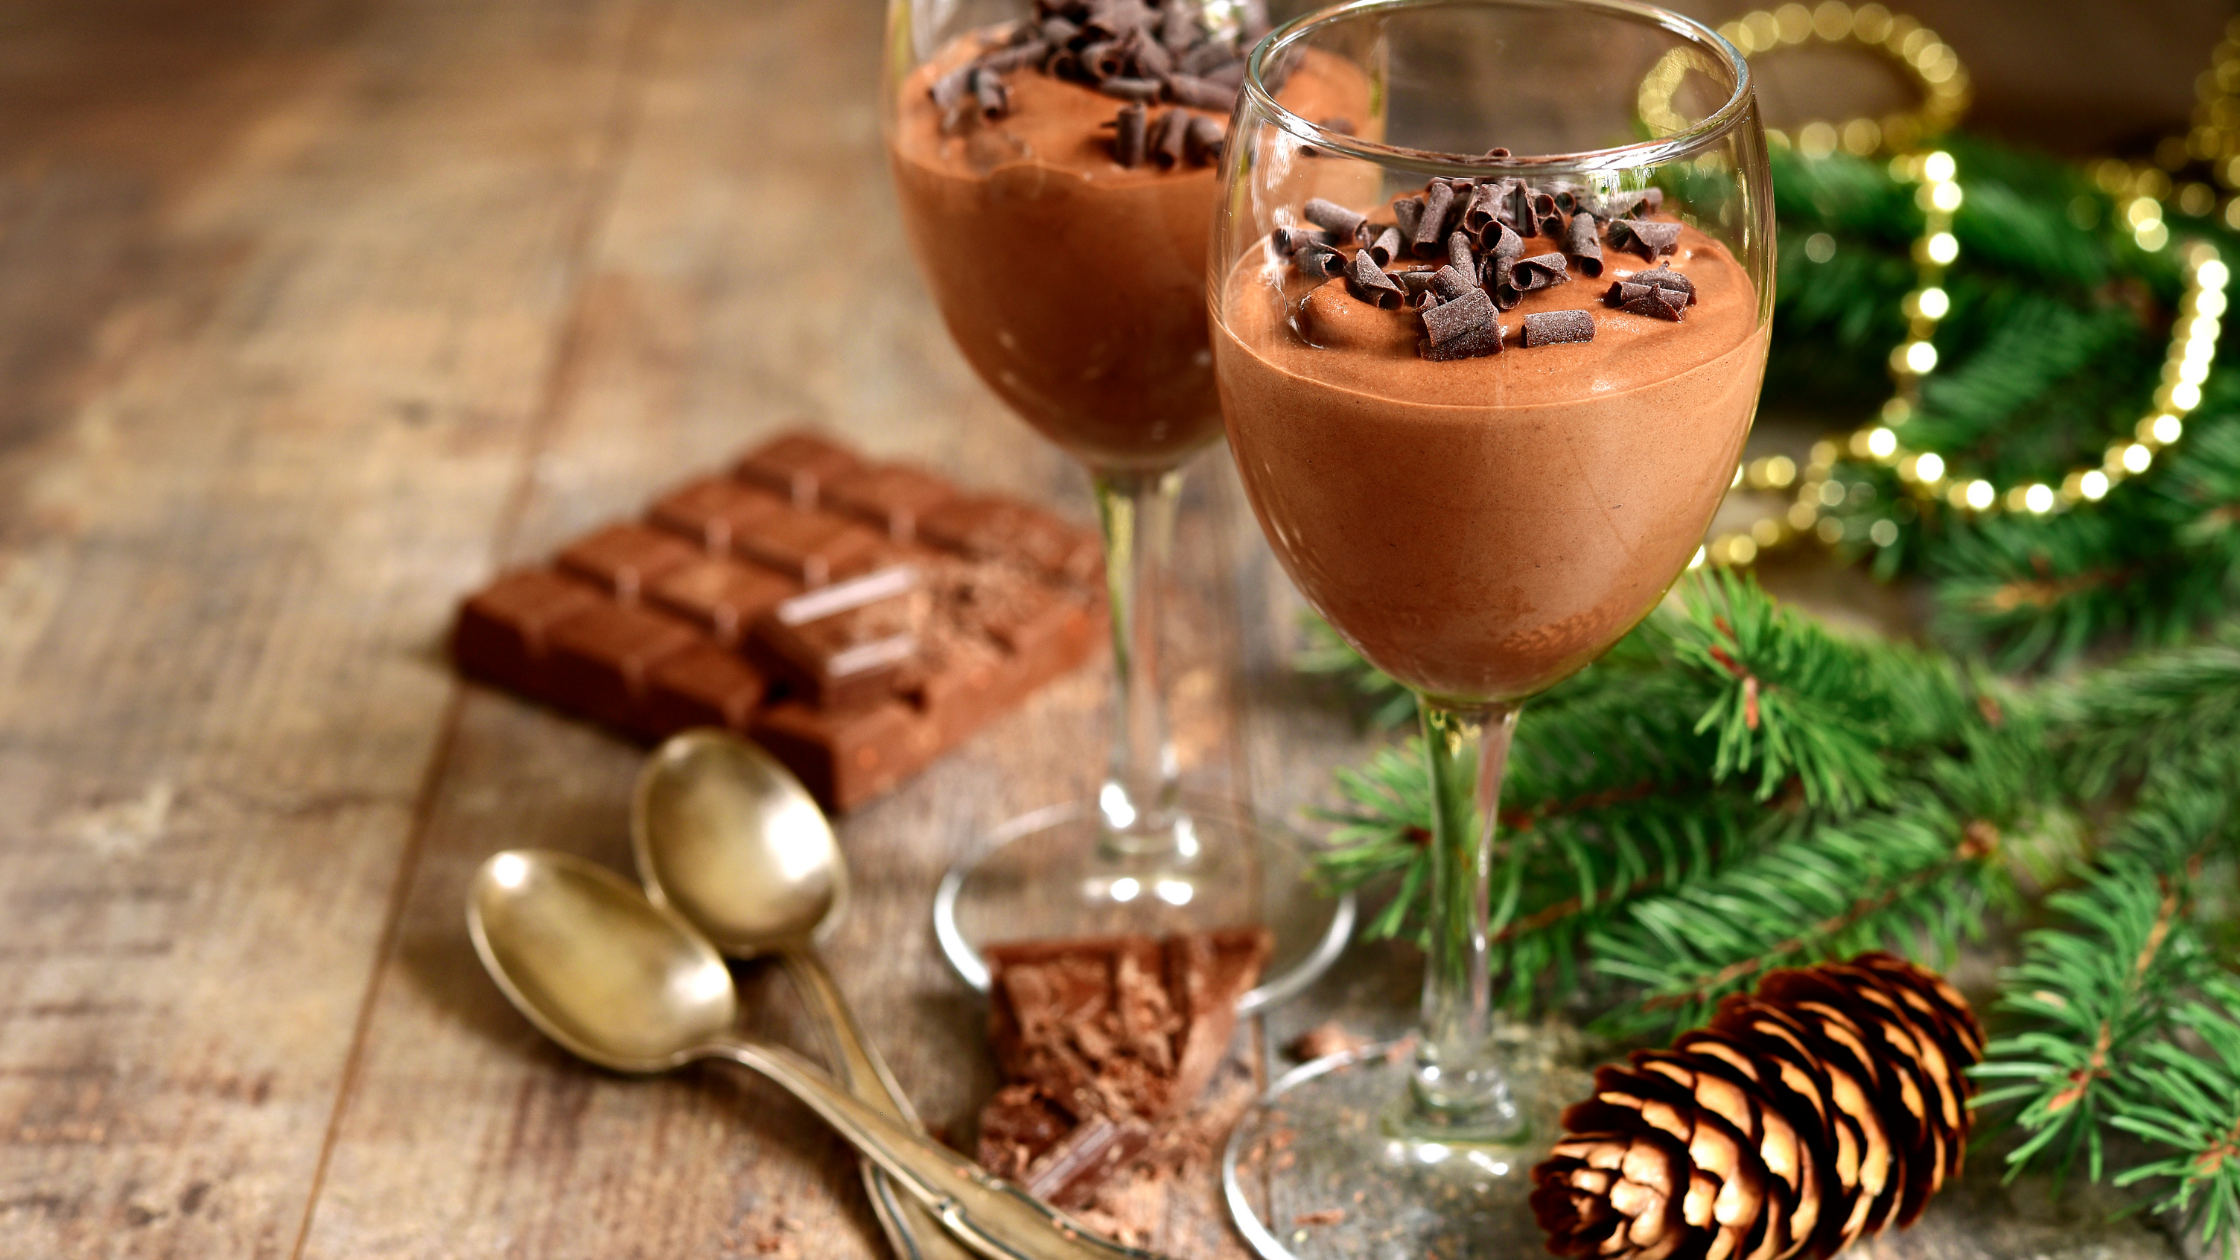 Swiss Chocolate Mousse with Peppermint and Orange